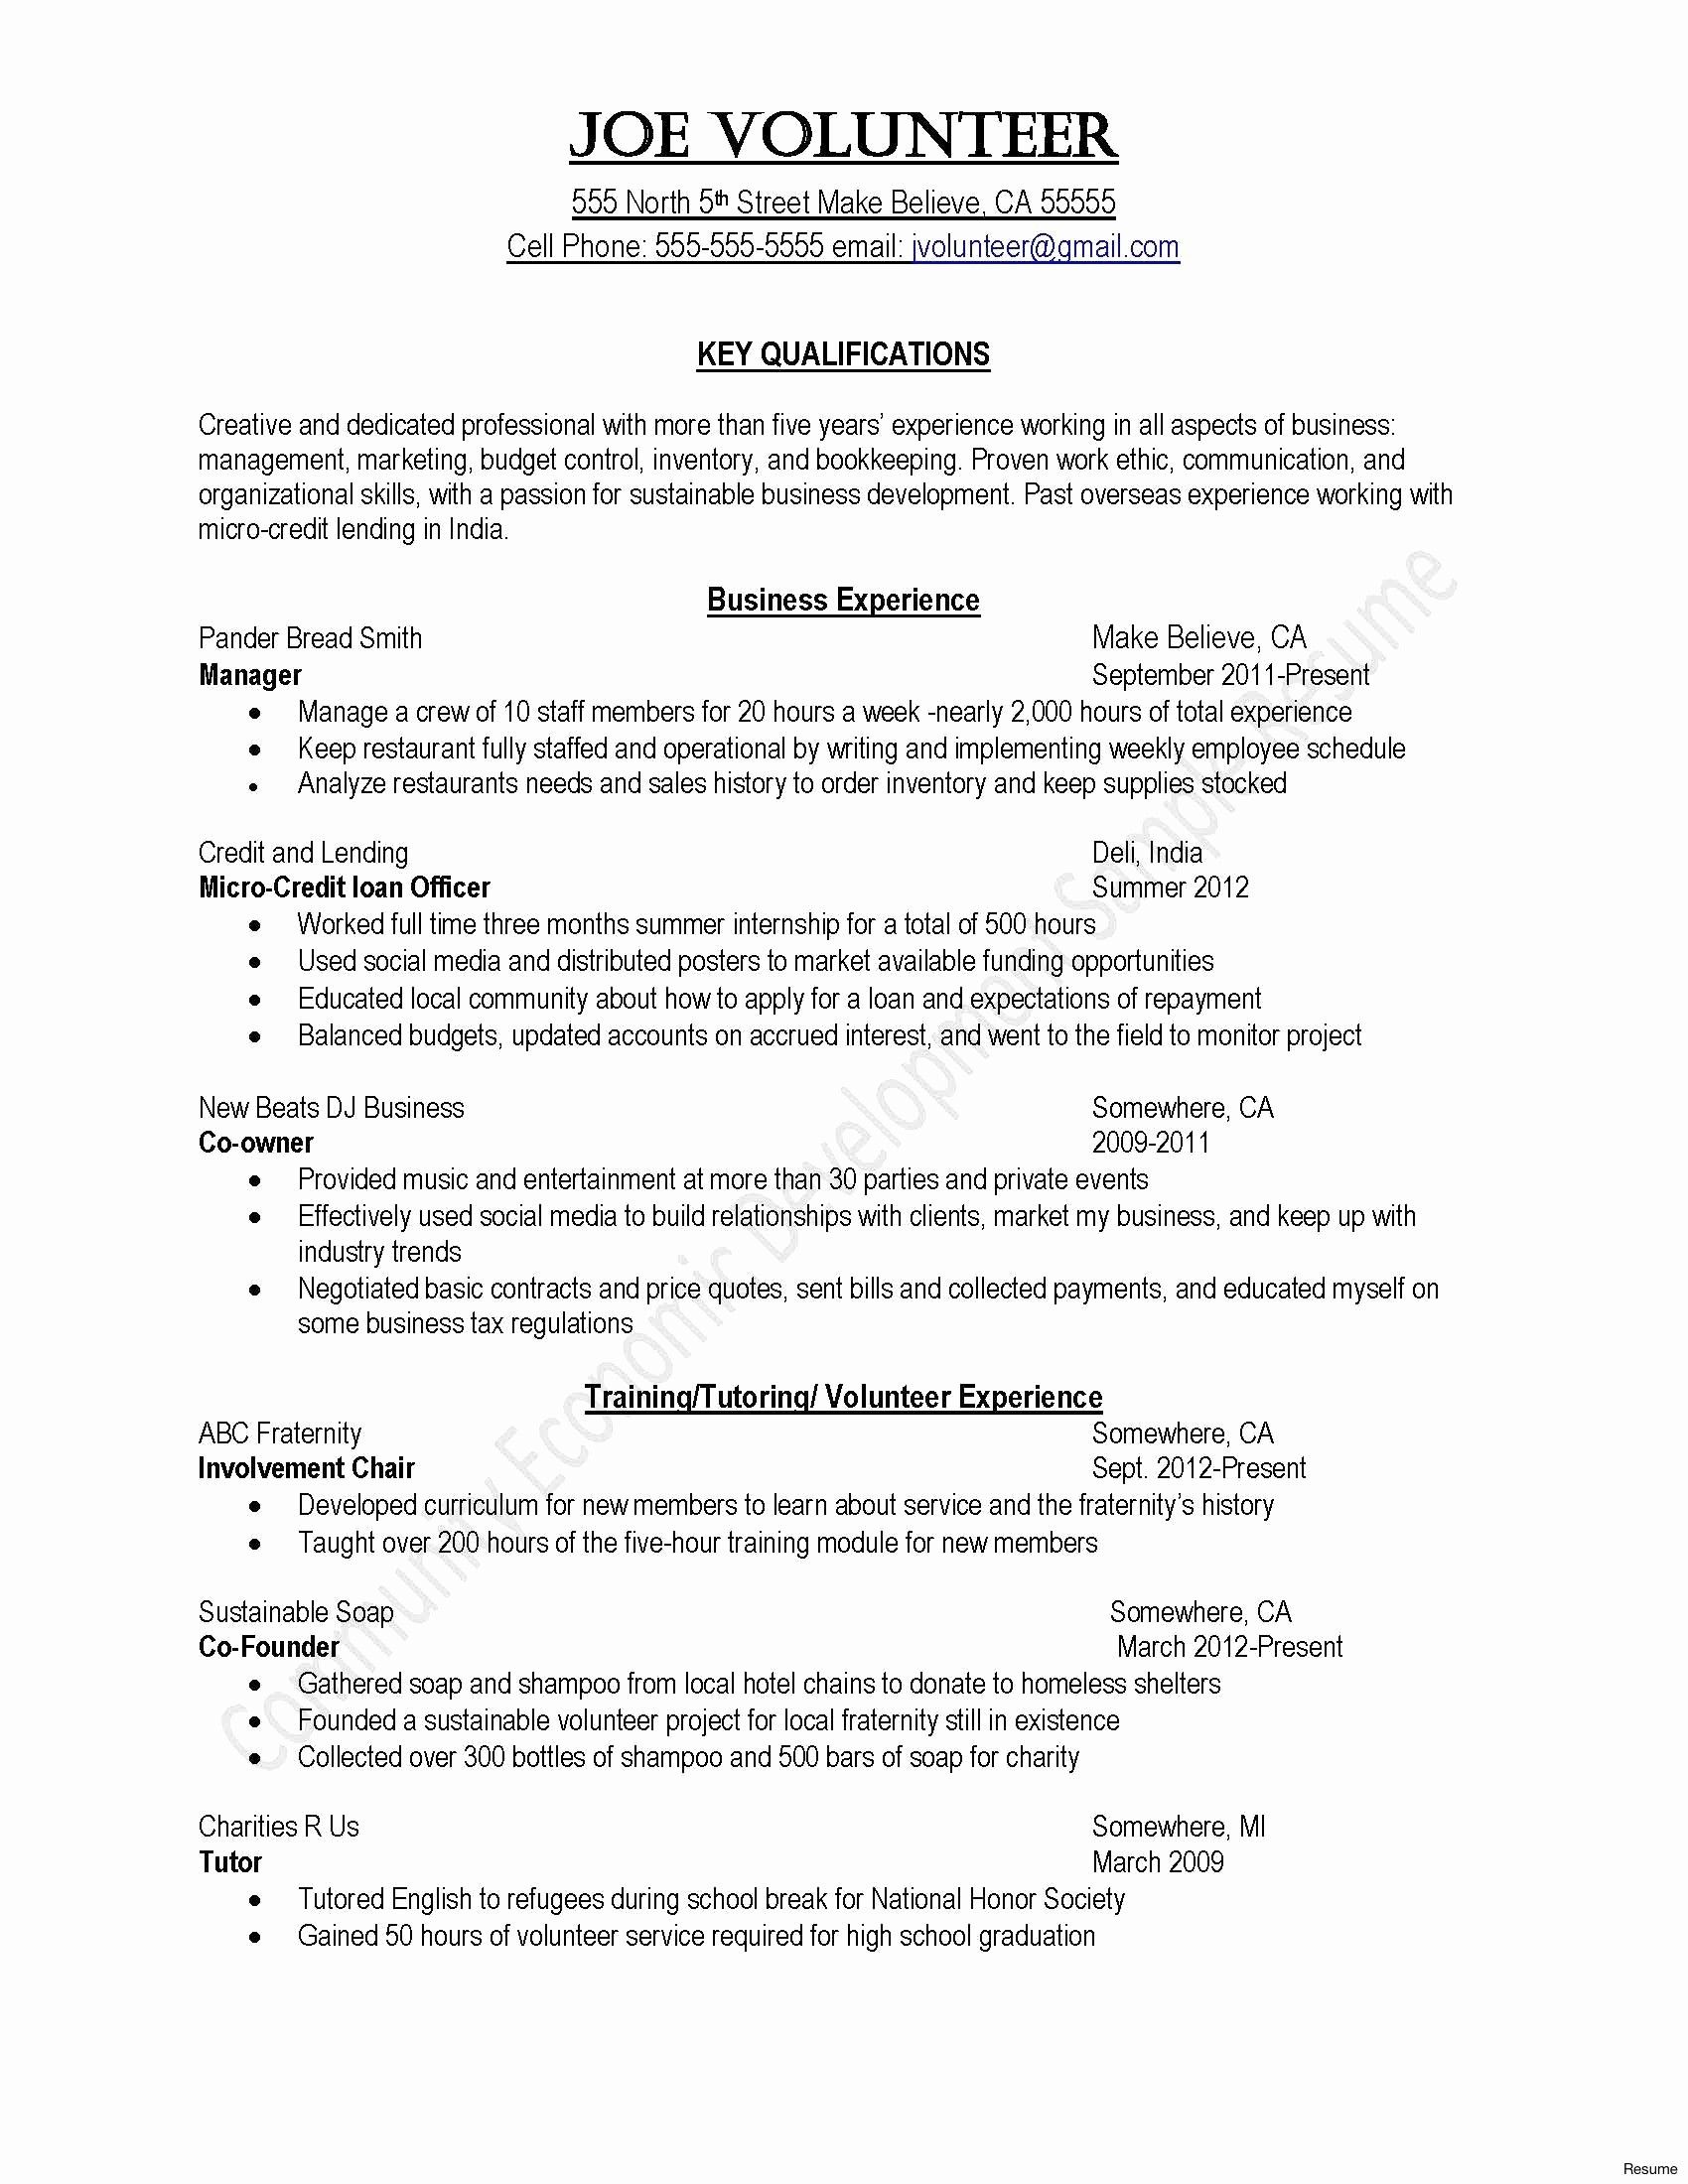 Stand Out Cover Letter Template - Good Way to Start A Cover Letter